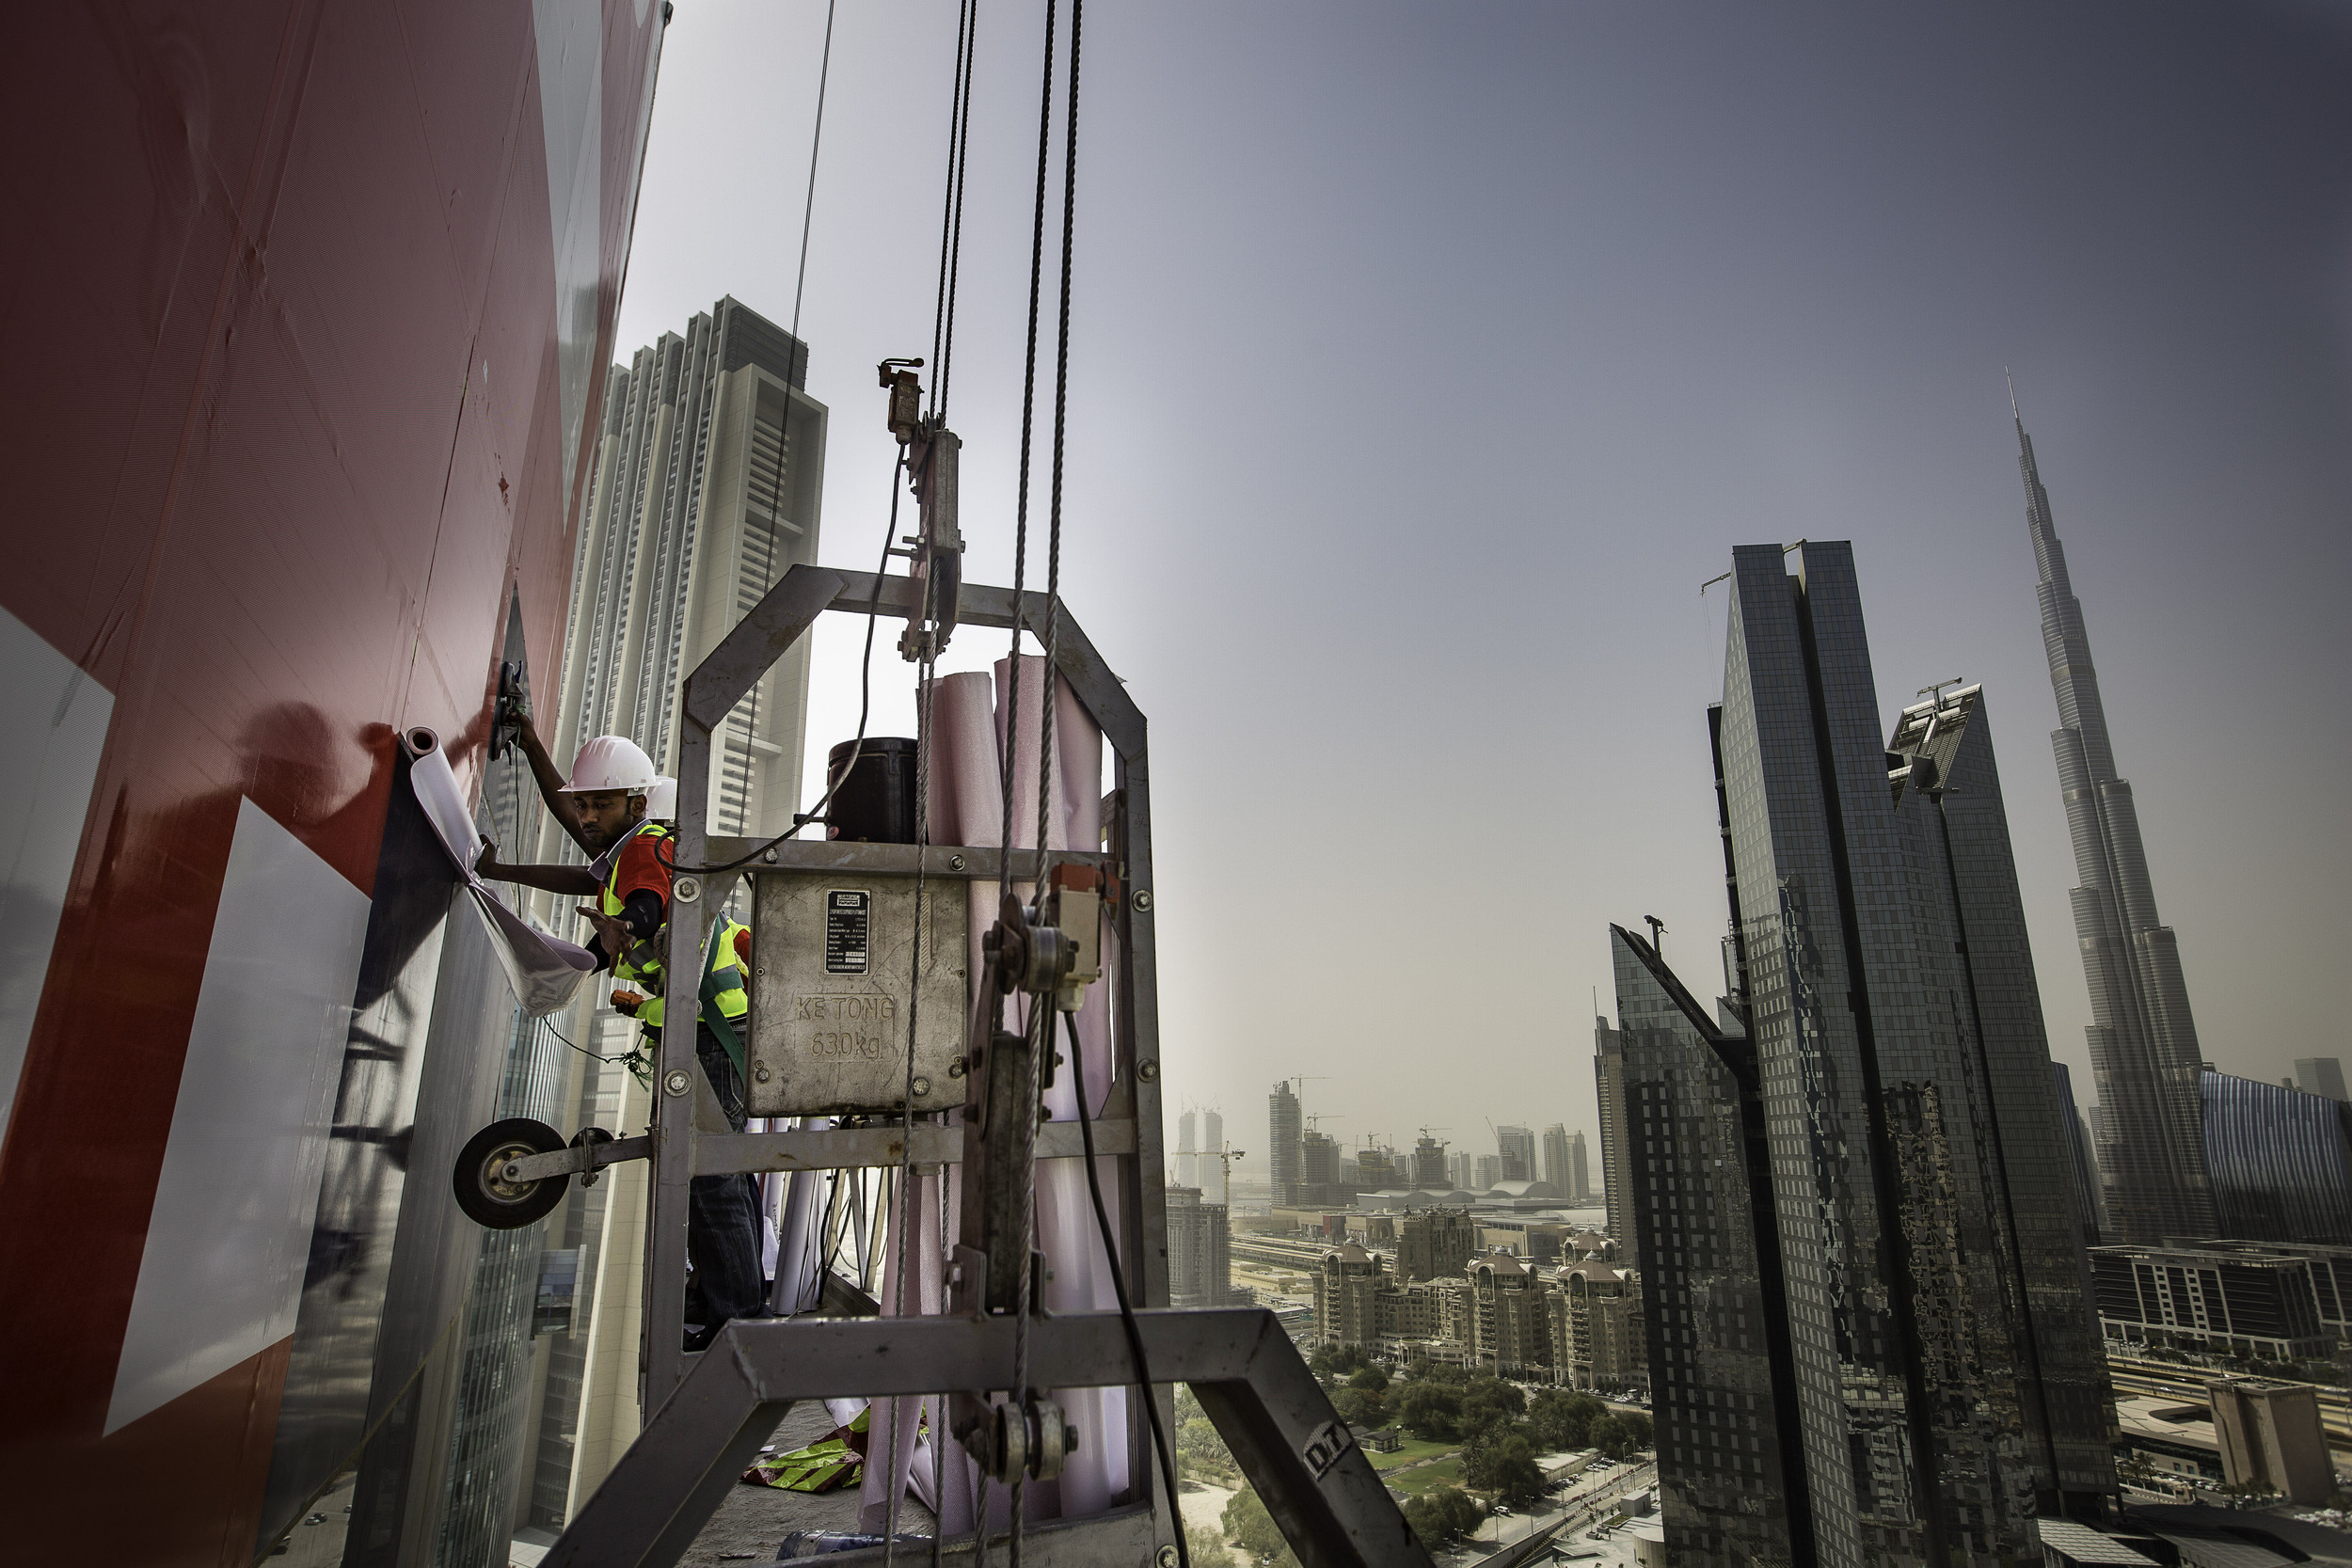 ENG advert applicators put up an advert on a building in Dubai.jpg